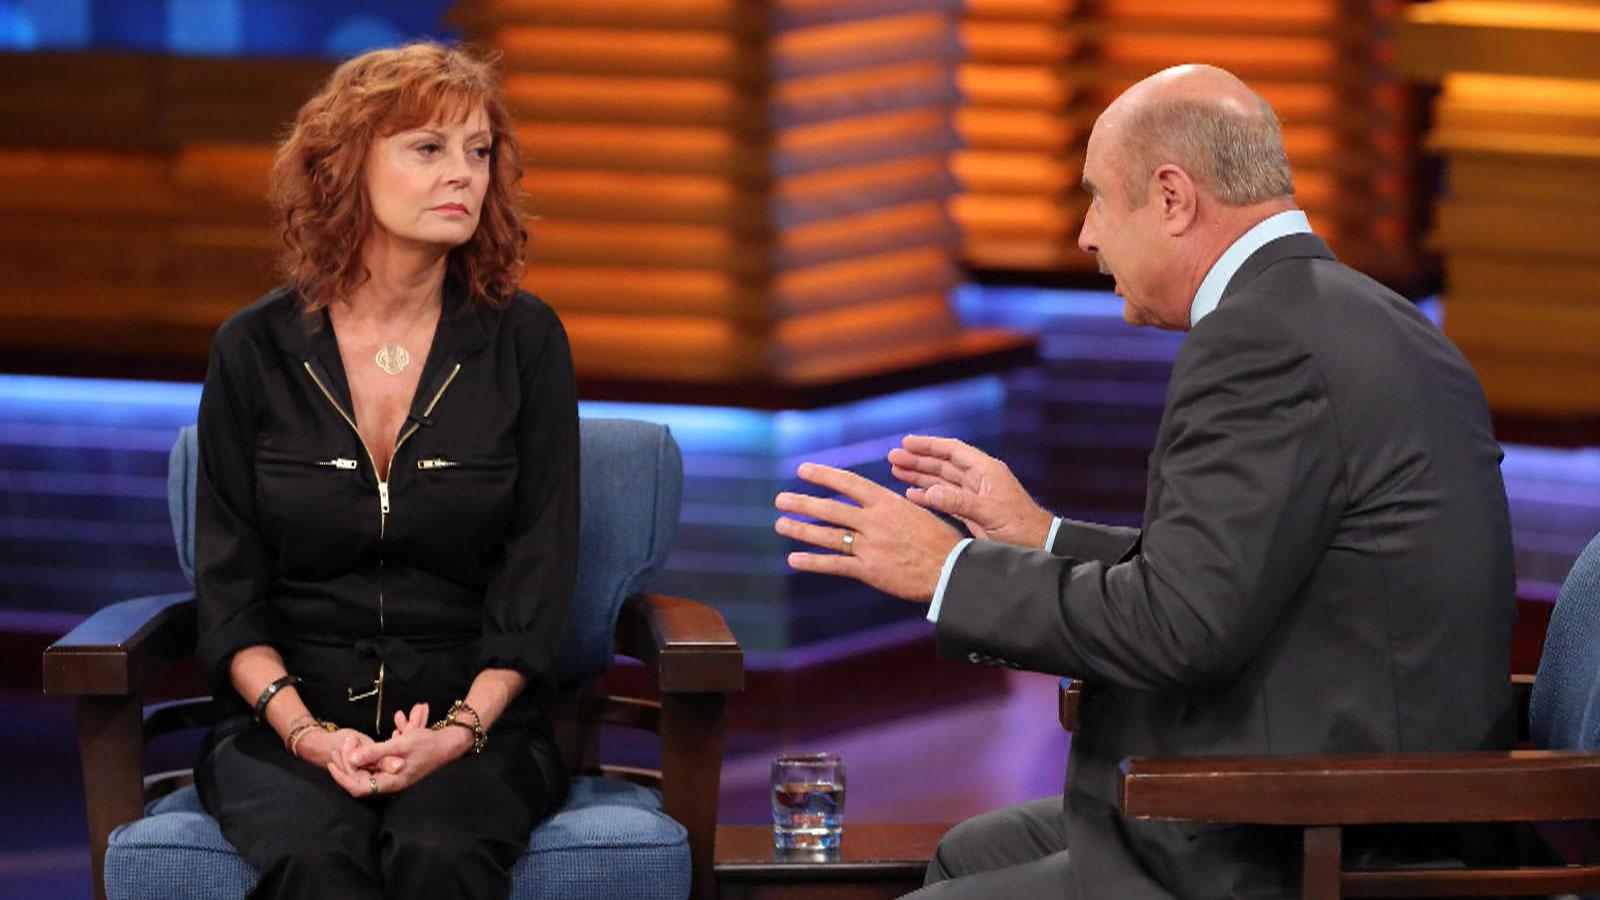 RT @accesshollywood: Preview - @DrPhil talks @SusanSarandon 's quest to save man from death row http://t.co/dzdkPVzHiC http://t.co/MXc6ft3o…